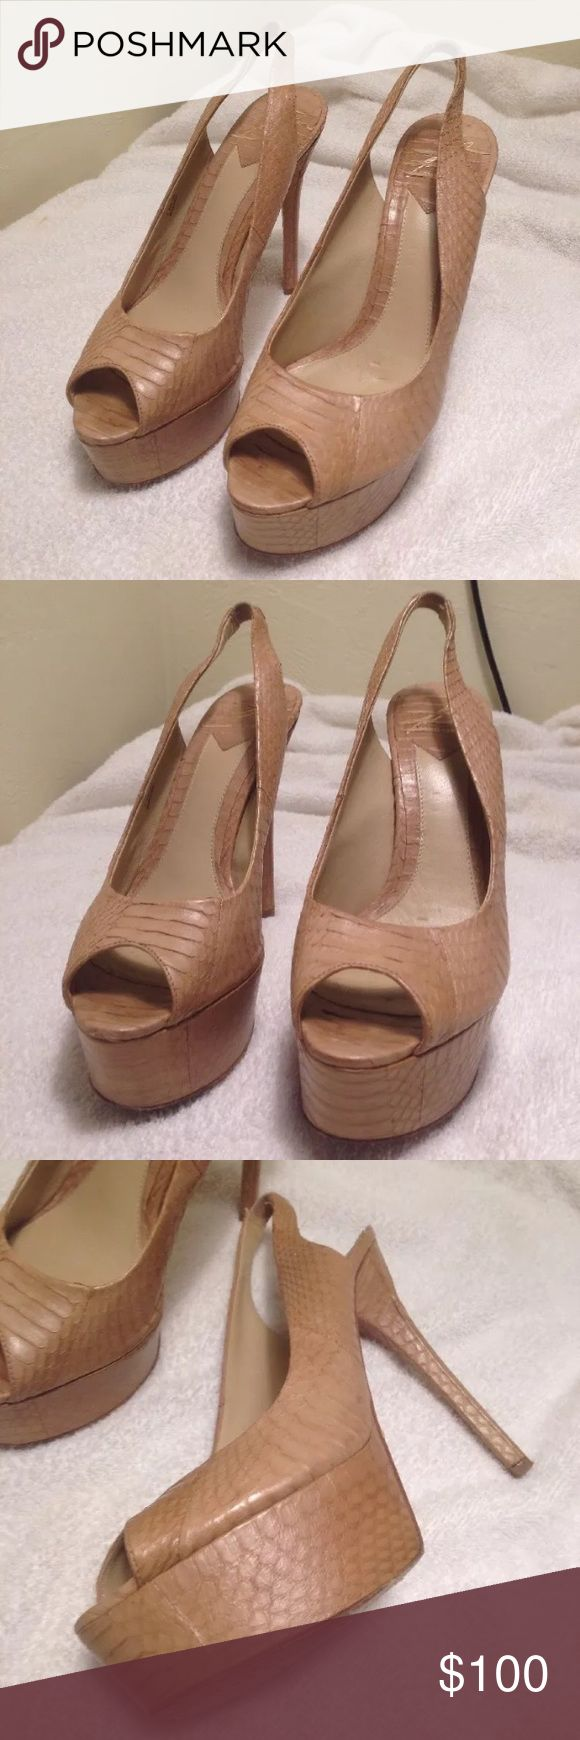 Brian Atwood Platform Pumps size 38 Beige Snake Brian Atwood Platform Pumps size 38 Beige Snake skin print made in Italy Brian Atwood Shoes Heels